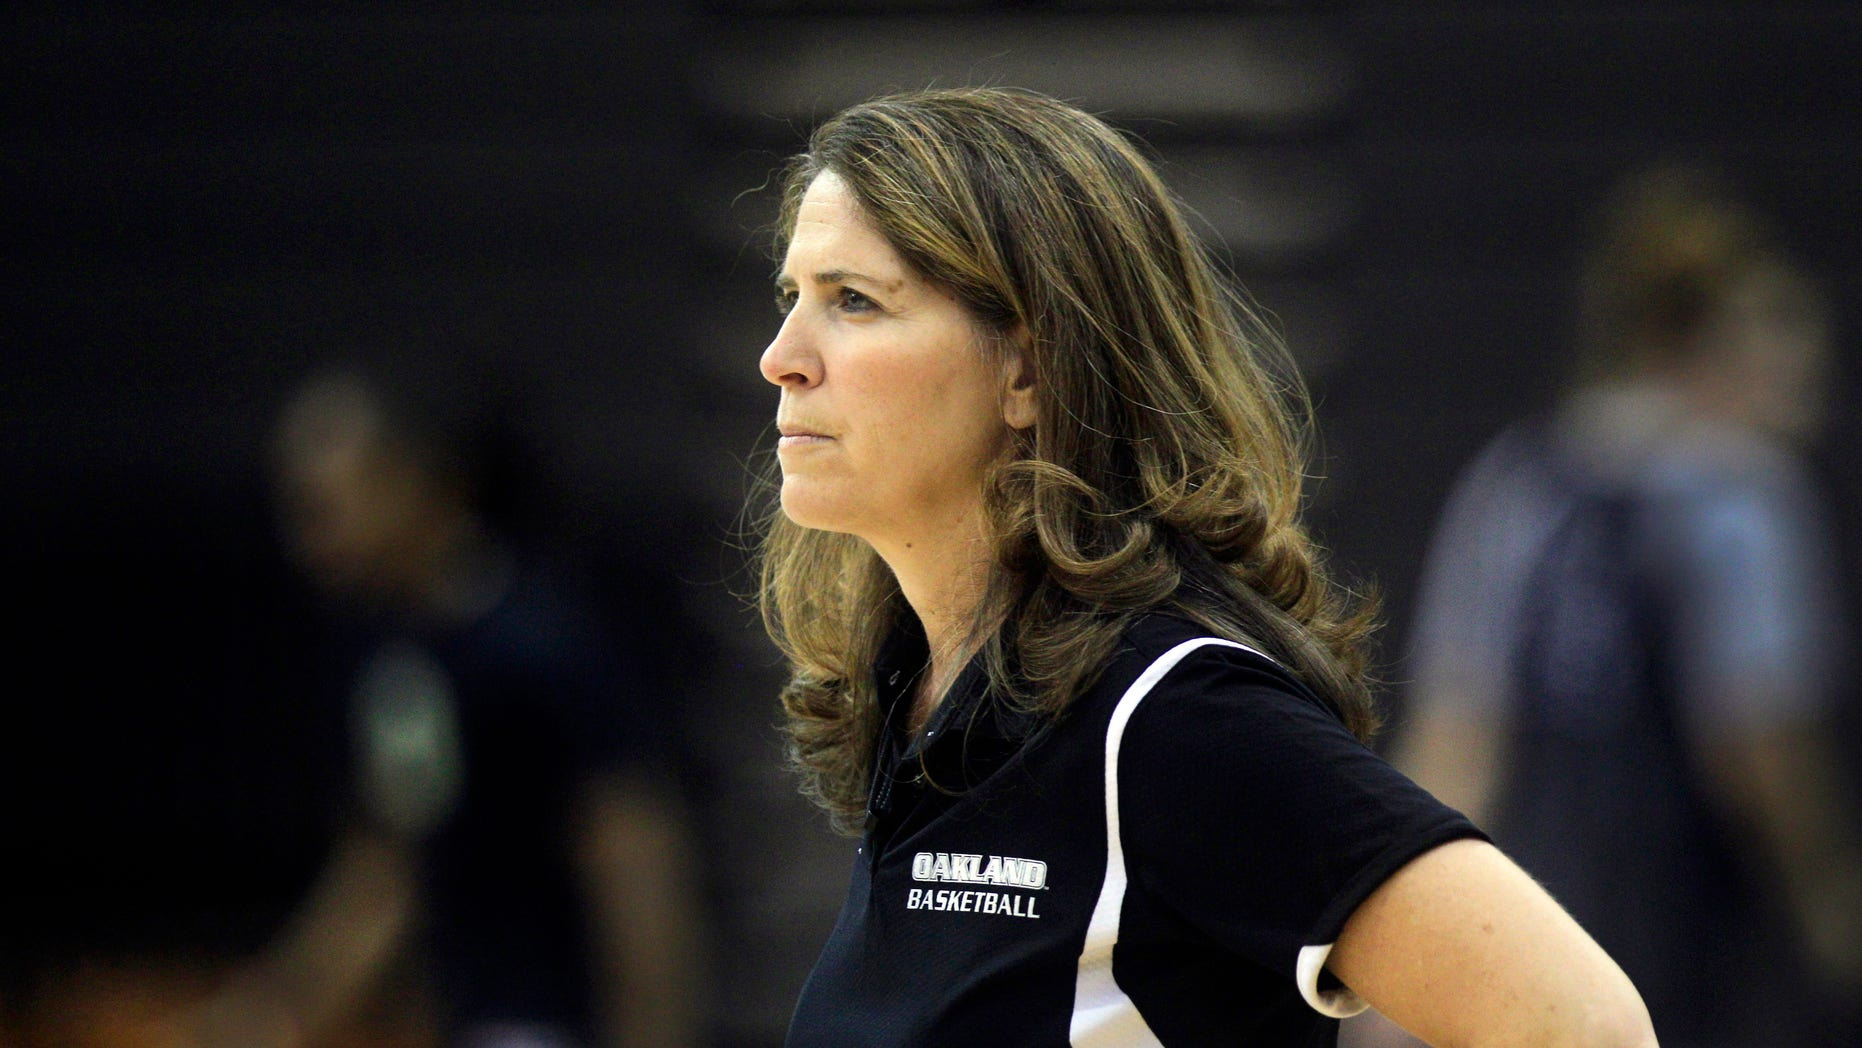 FILE - In this Oct. 16, 2012, file photo, Oakland University women's basketball coach Beckie Francis watches her team' practice in Rochester Hills, Mich. Oakland University says fired women's basketball coach  Francis physically and emotionally abused her players, was obsessed about their weight and pushed her Christian beliefs on them. The Detroit Free Press and The Oakland Press of Pontiac say the suburban Detroit-based public university made the statements in a brief responding to Francis's suit in Oakland County Circuit Court. (AP Photo/Carlos Osorio, File)